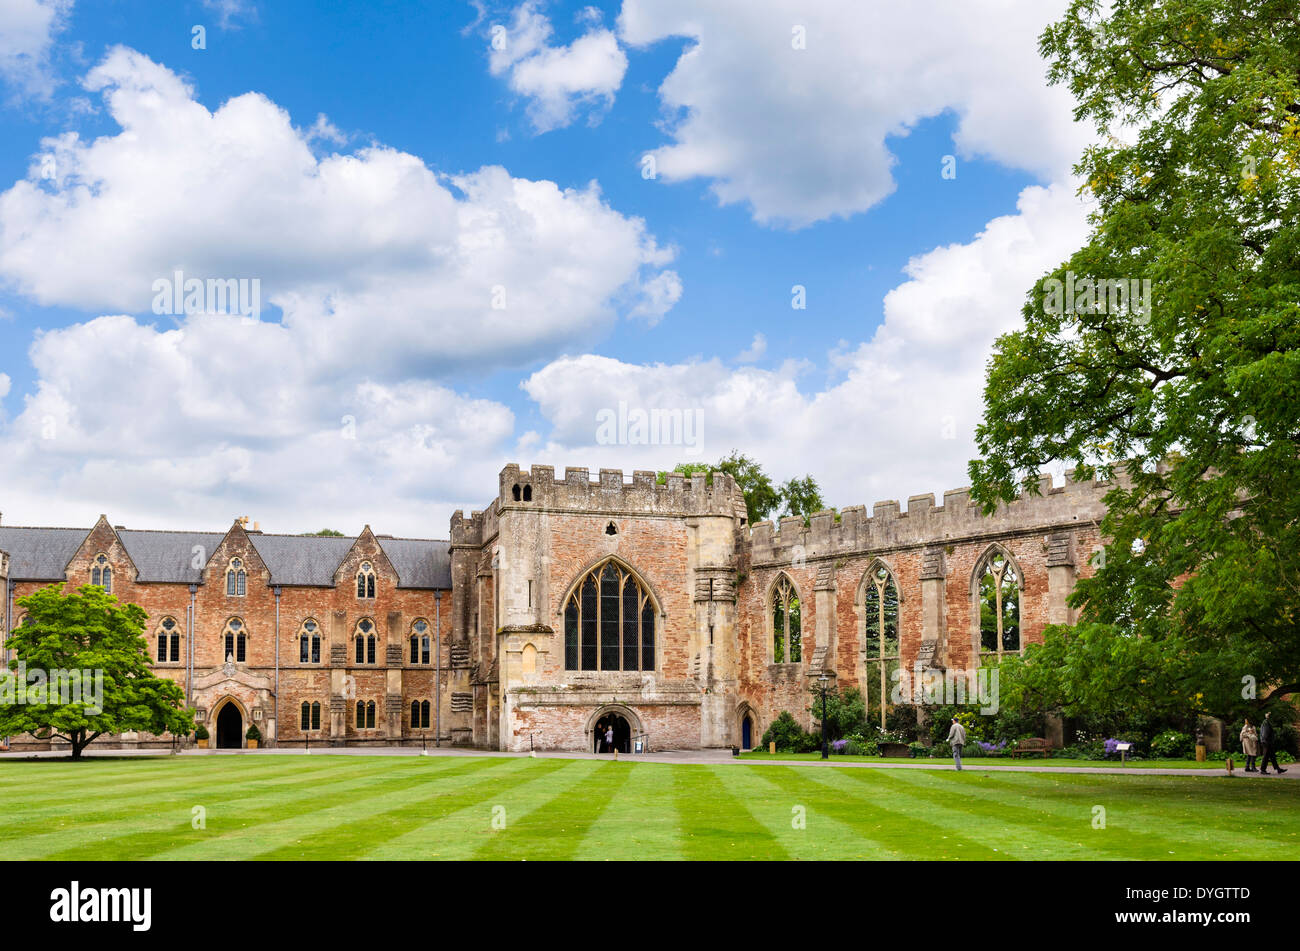 Wells somerset stock photos wells somerset stock images - Holiday homes in somerset with swimming pool ...